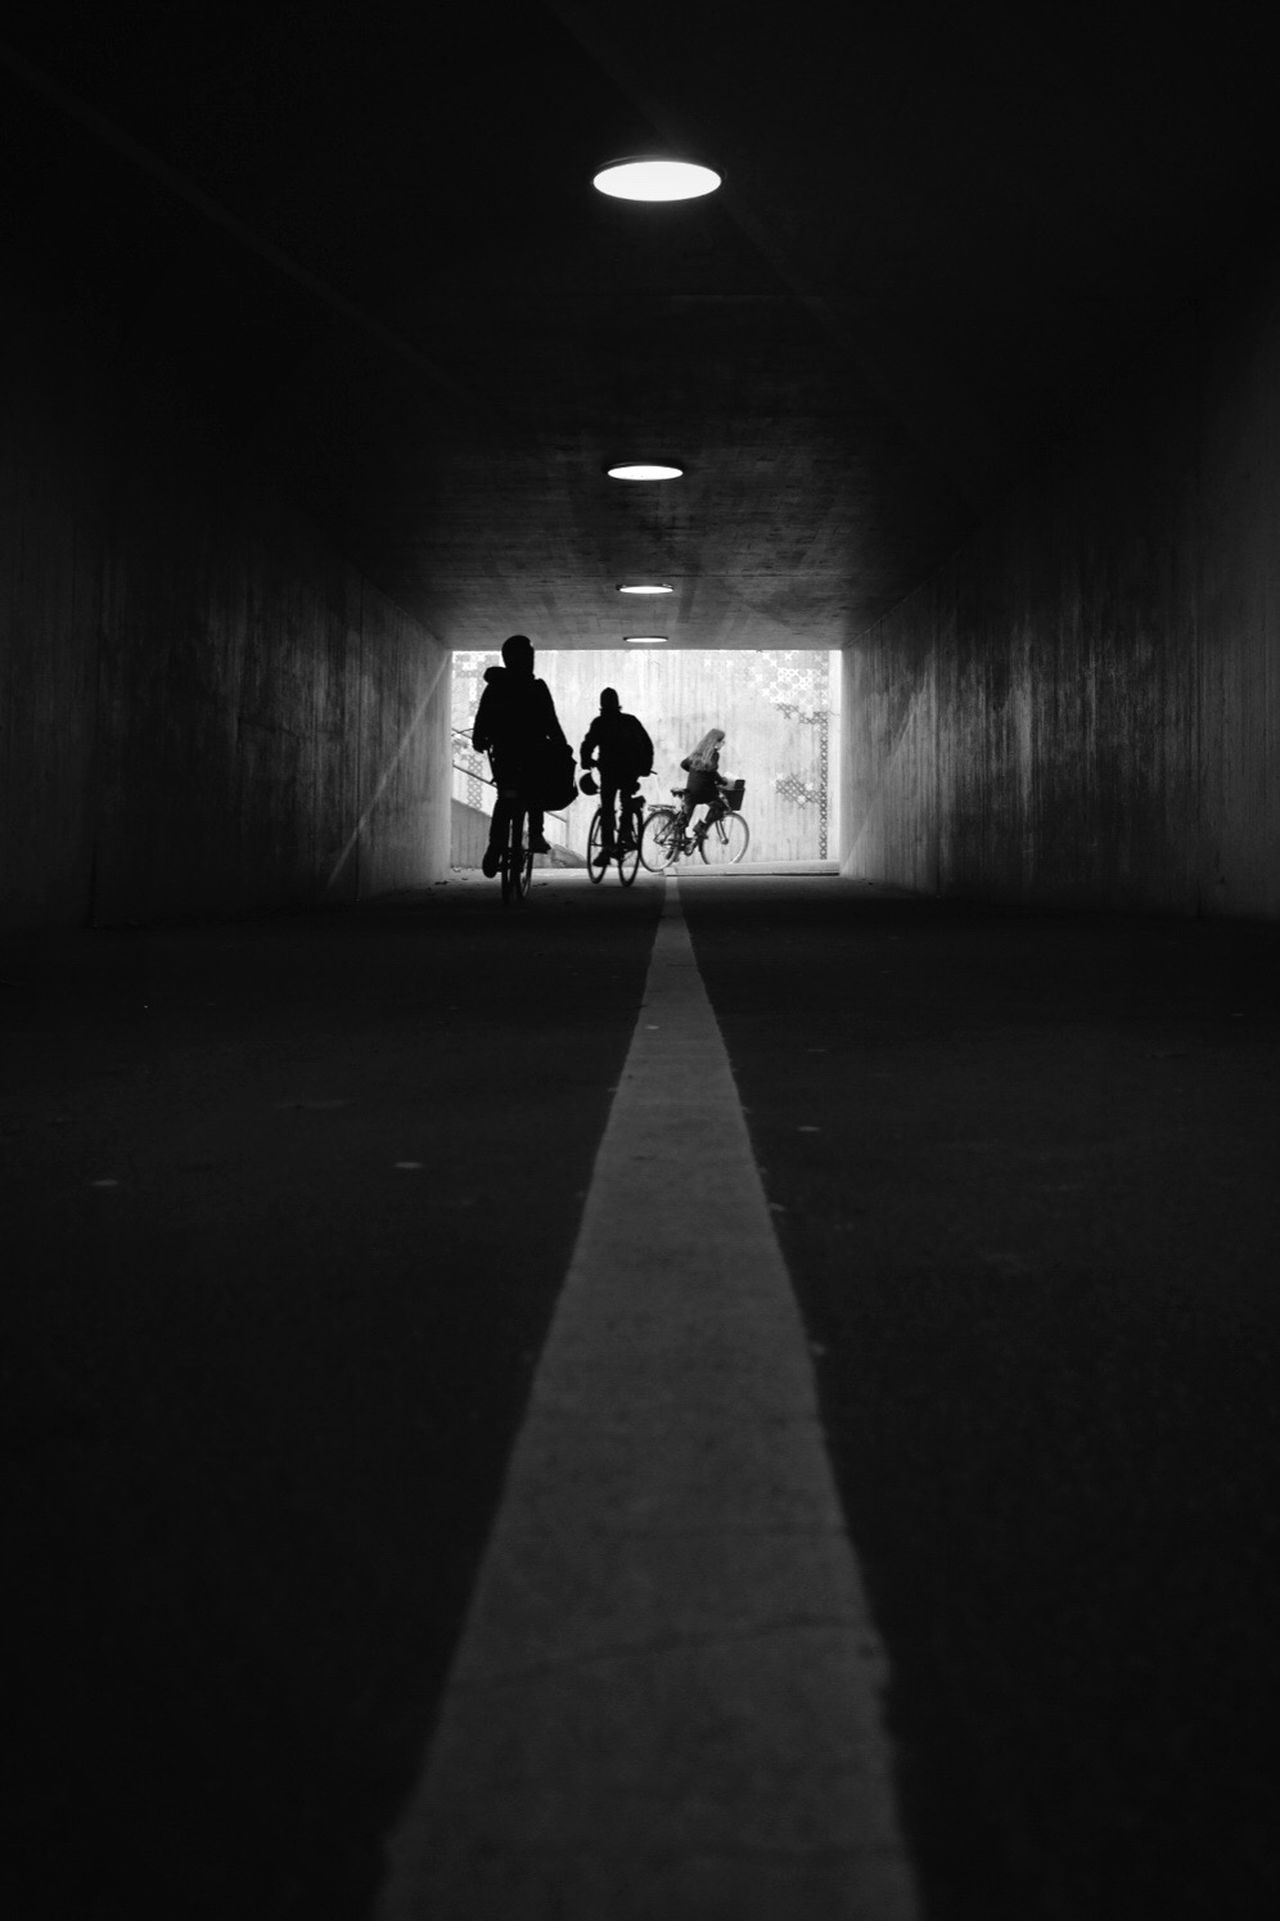 Black And White Monochrome Silhouette Street Photography Bicycle Darkness And Light Low Angle View